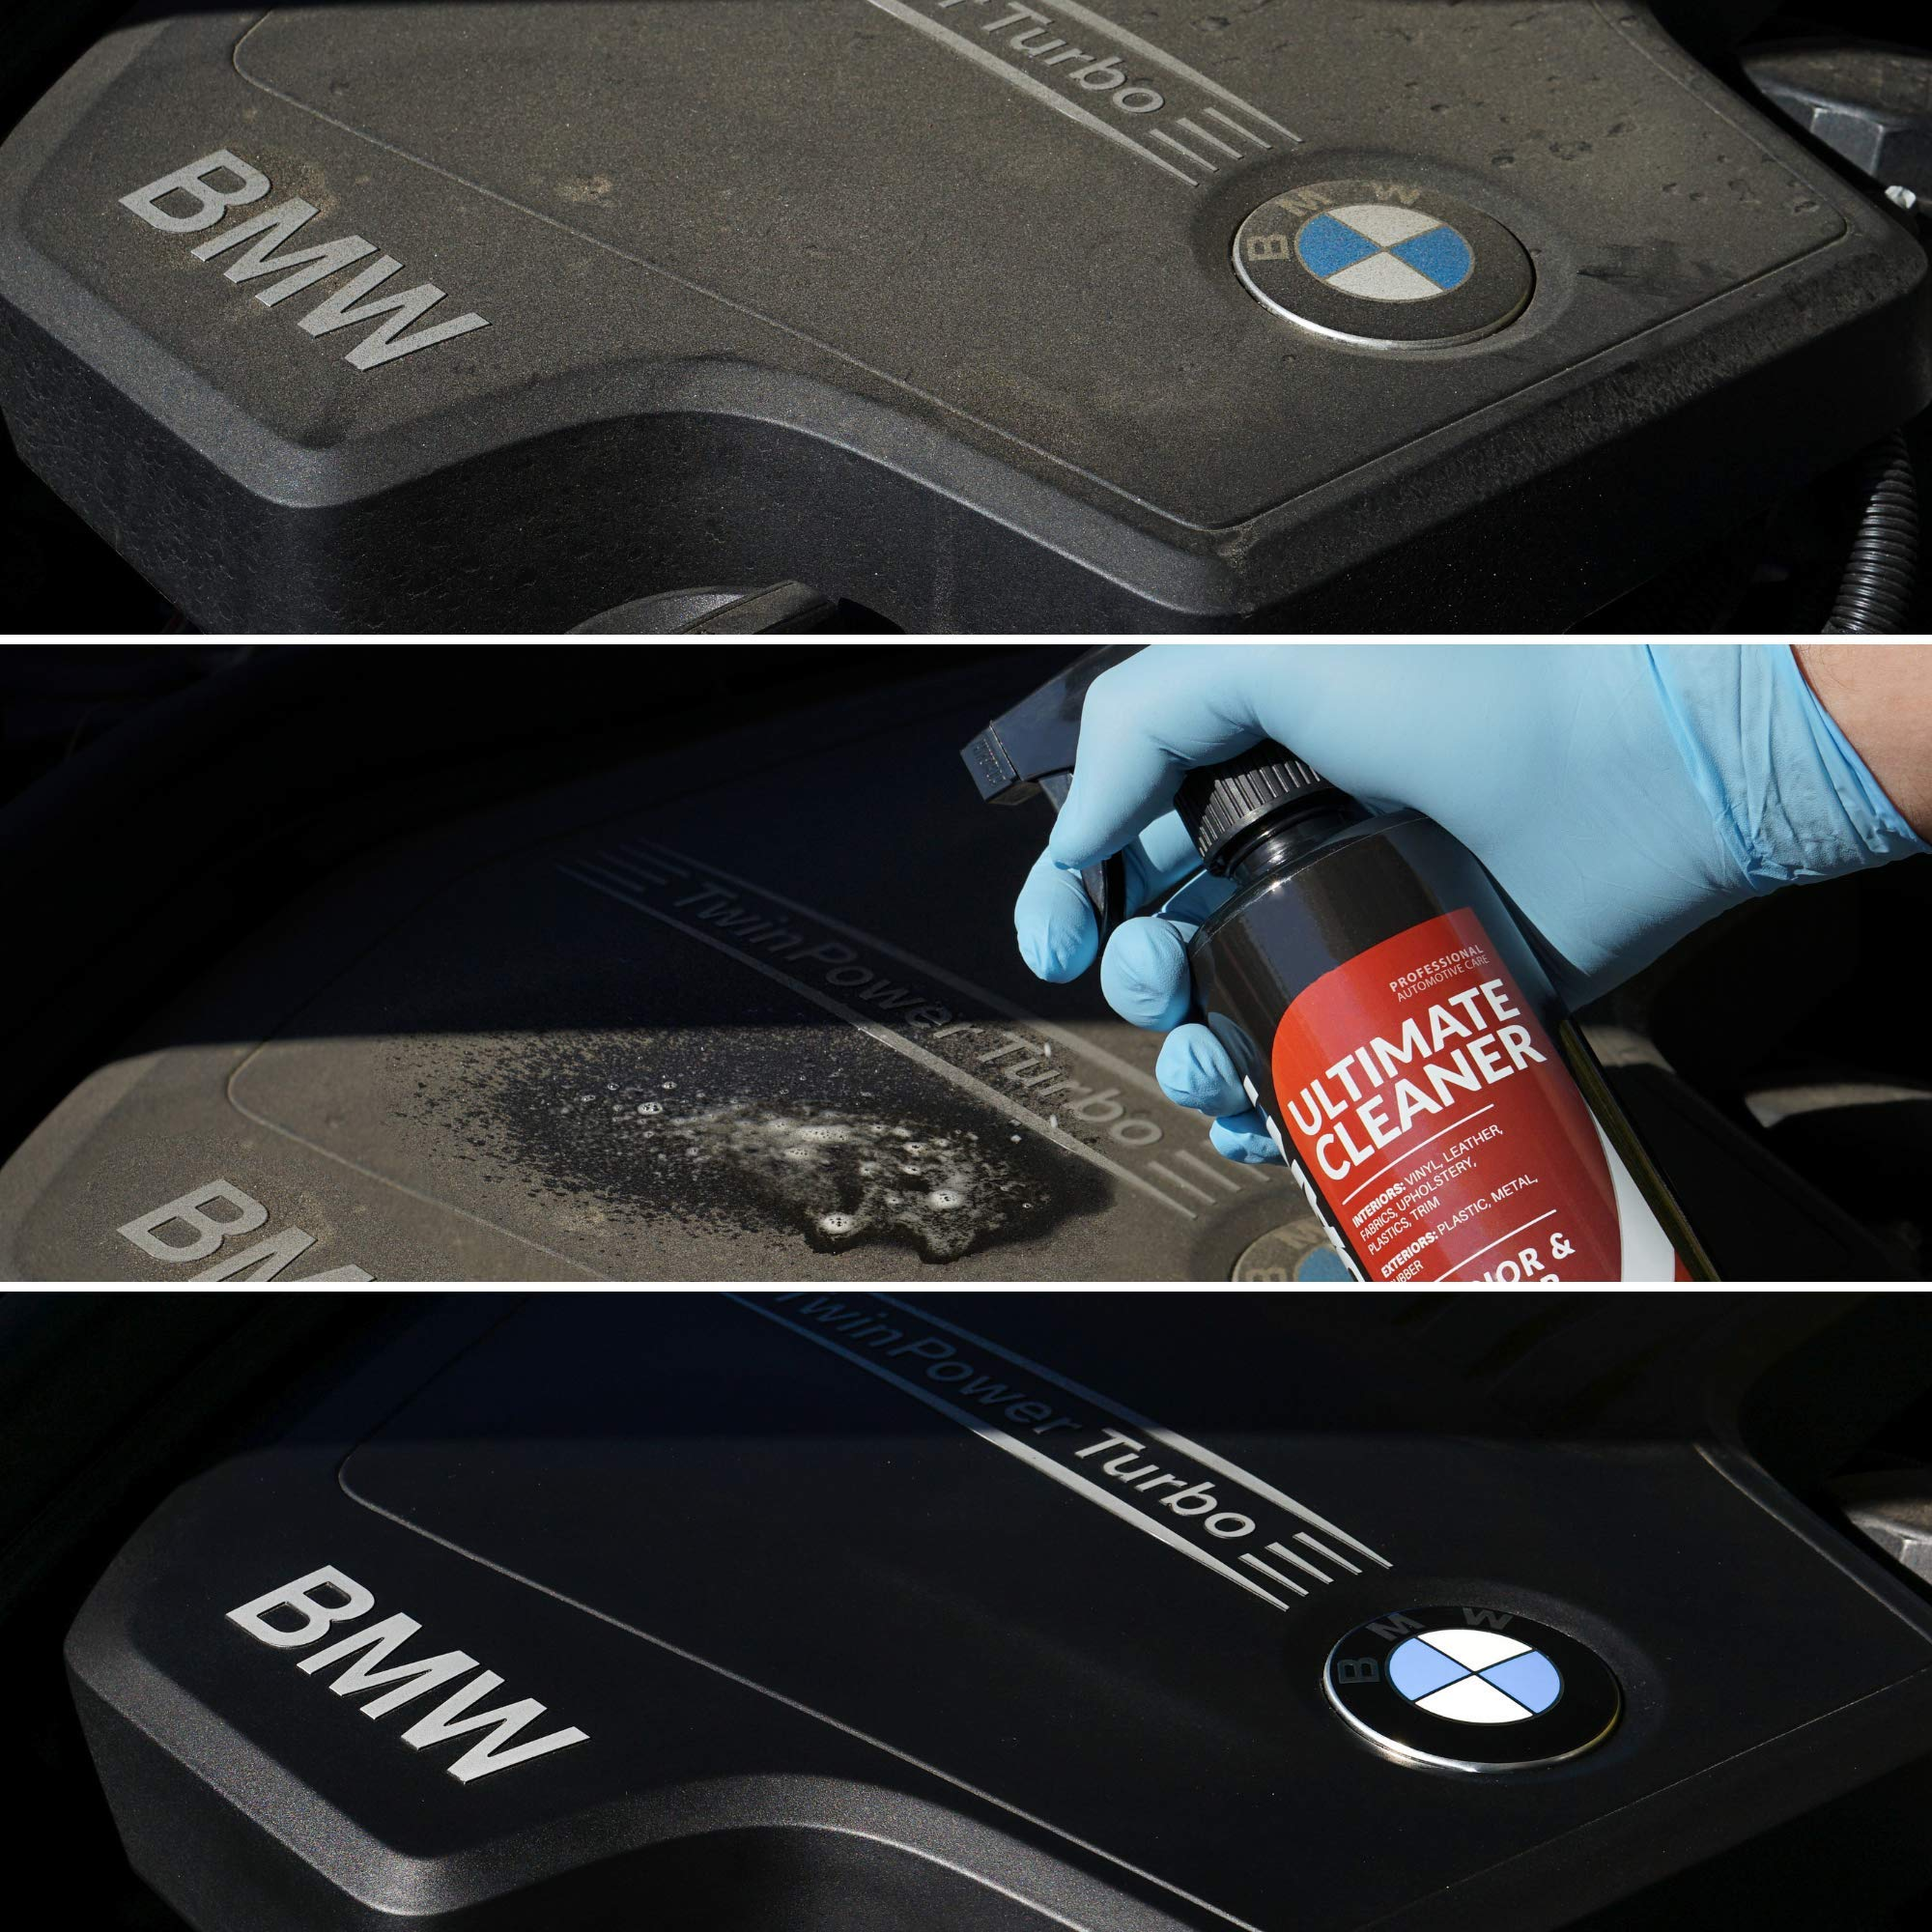 Carfidant Ultimate Car Interior Cleaner - Automotive Interior & Exterior Cleaner All Purpose Cleaner for Car Carpet Upholstery Leather Vinyl Cloth Plastic Seats Trim Engine Mats - Car Cleaning Kit by Carfidant (Image #2)